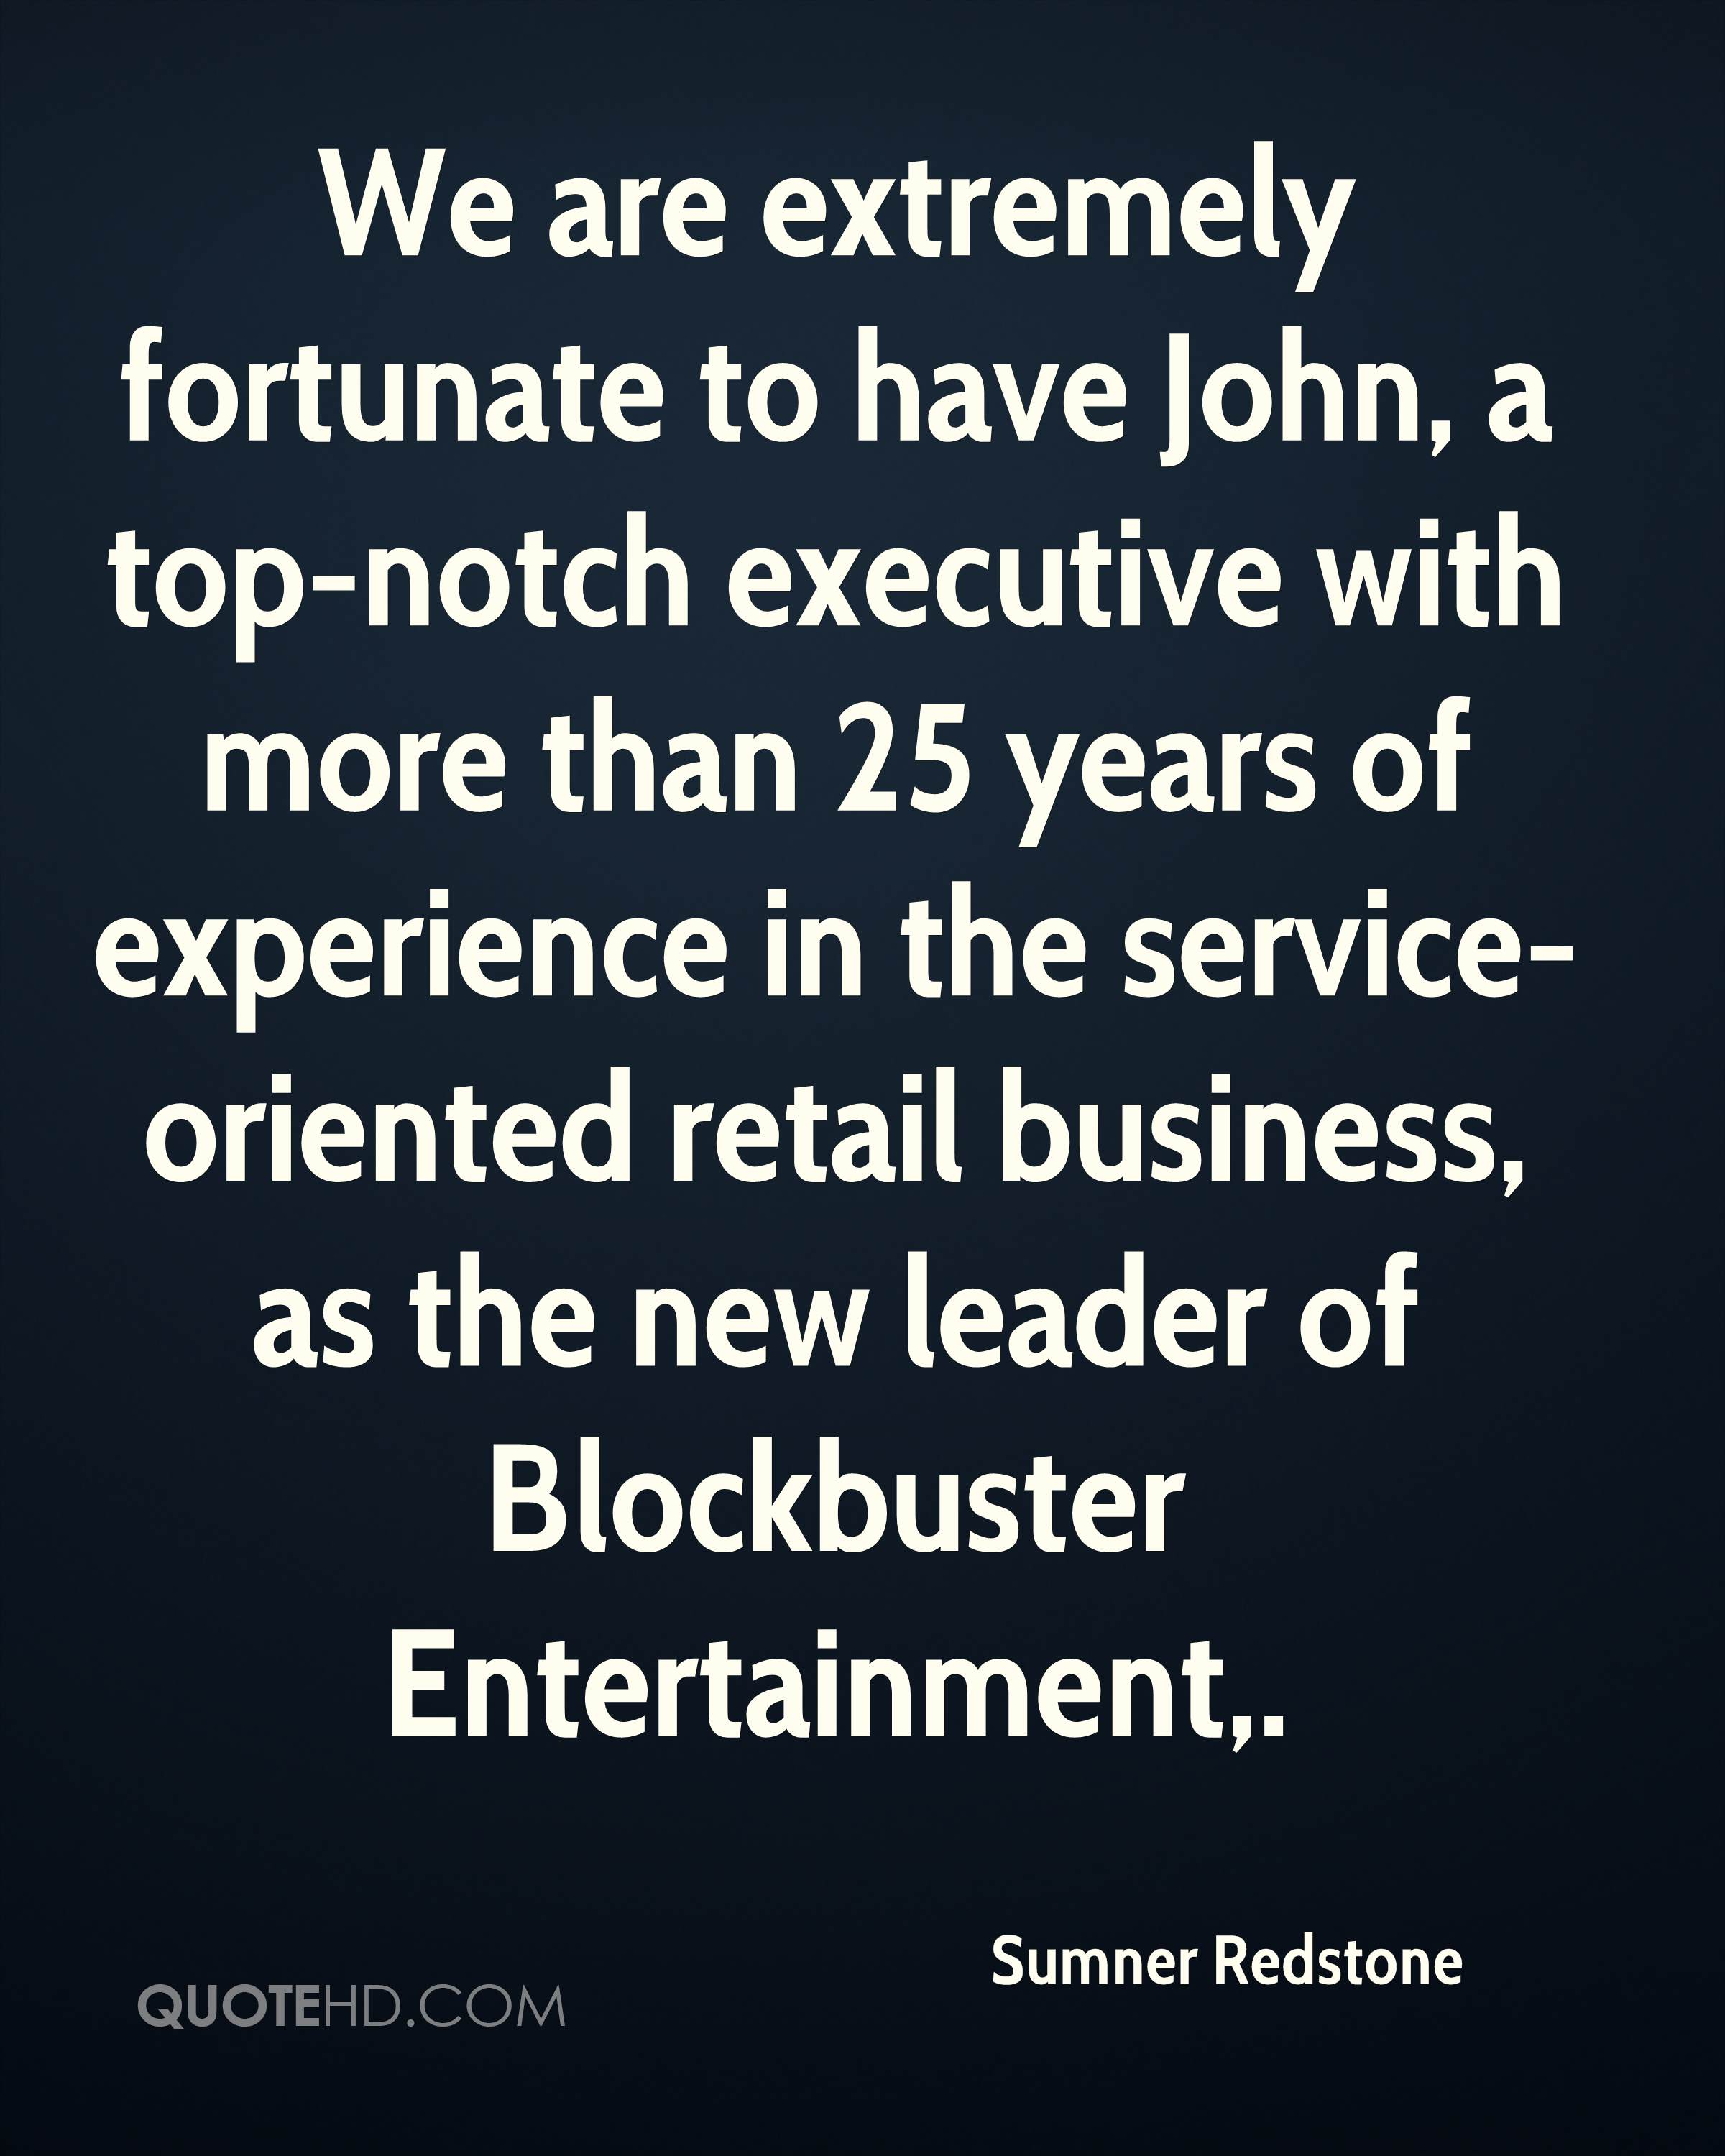 We are extremely fortunate to have John, a top-notch executive with more than 25 years of experience in the service-oriented retail business, as the new leader of Blockbuster Entertainment.